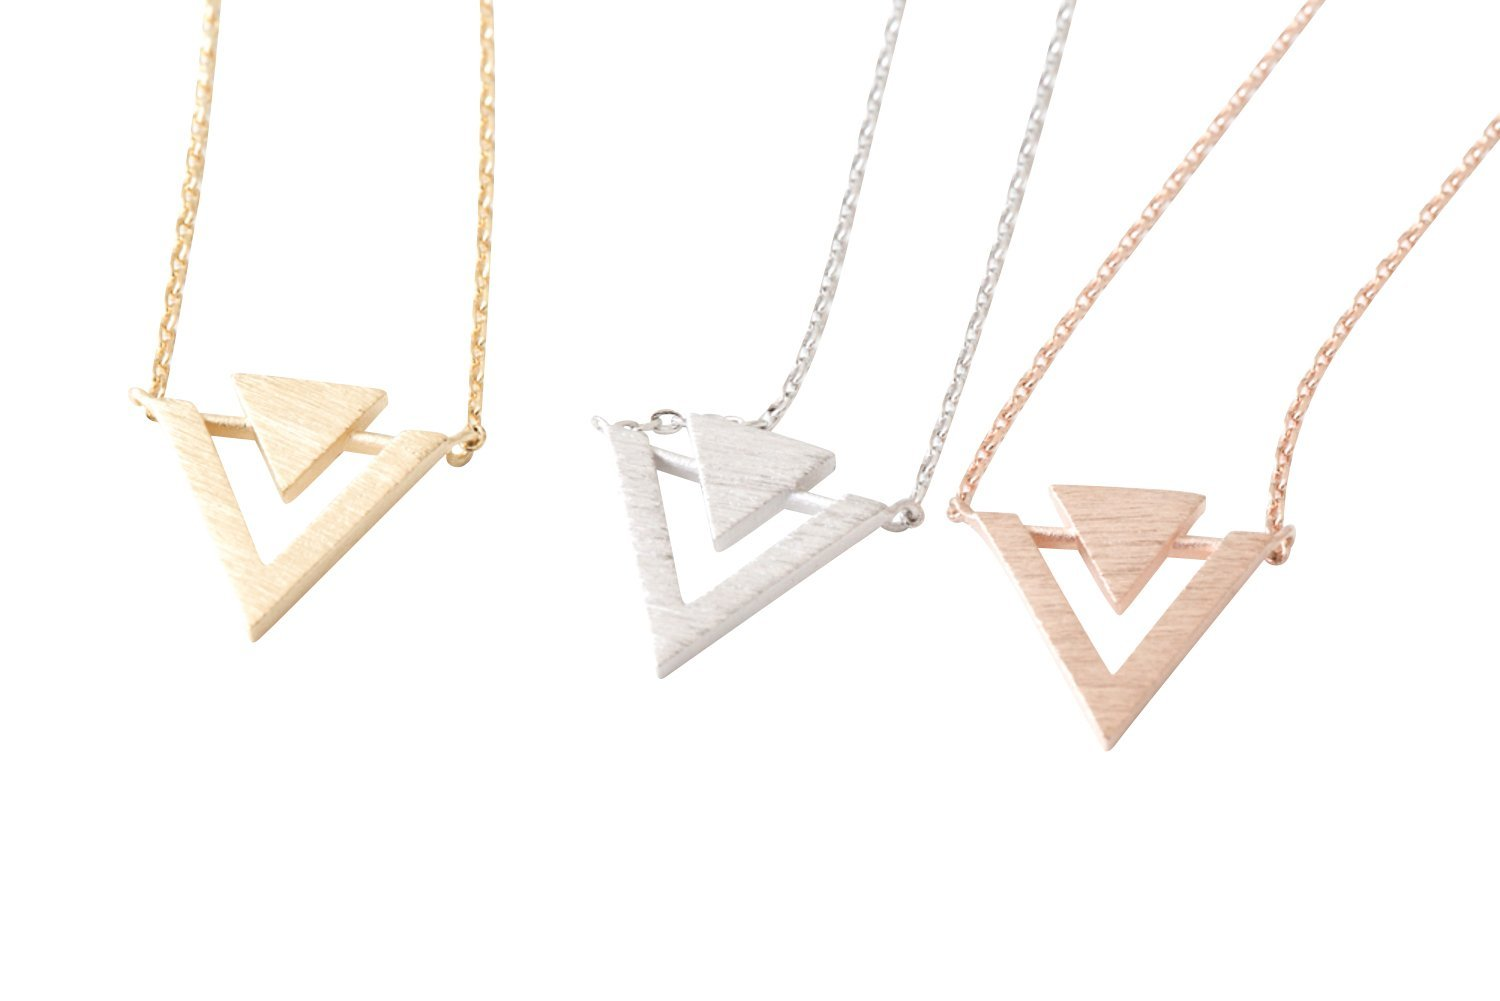 Unique Triangle Necklace-jz , triangle jewelry, triangle necklace, triangle shape jewelry, triangle shape necklace, triangle jewellry, geometric jewel